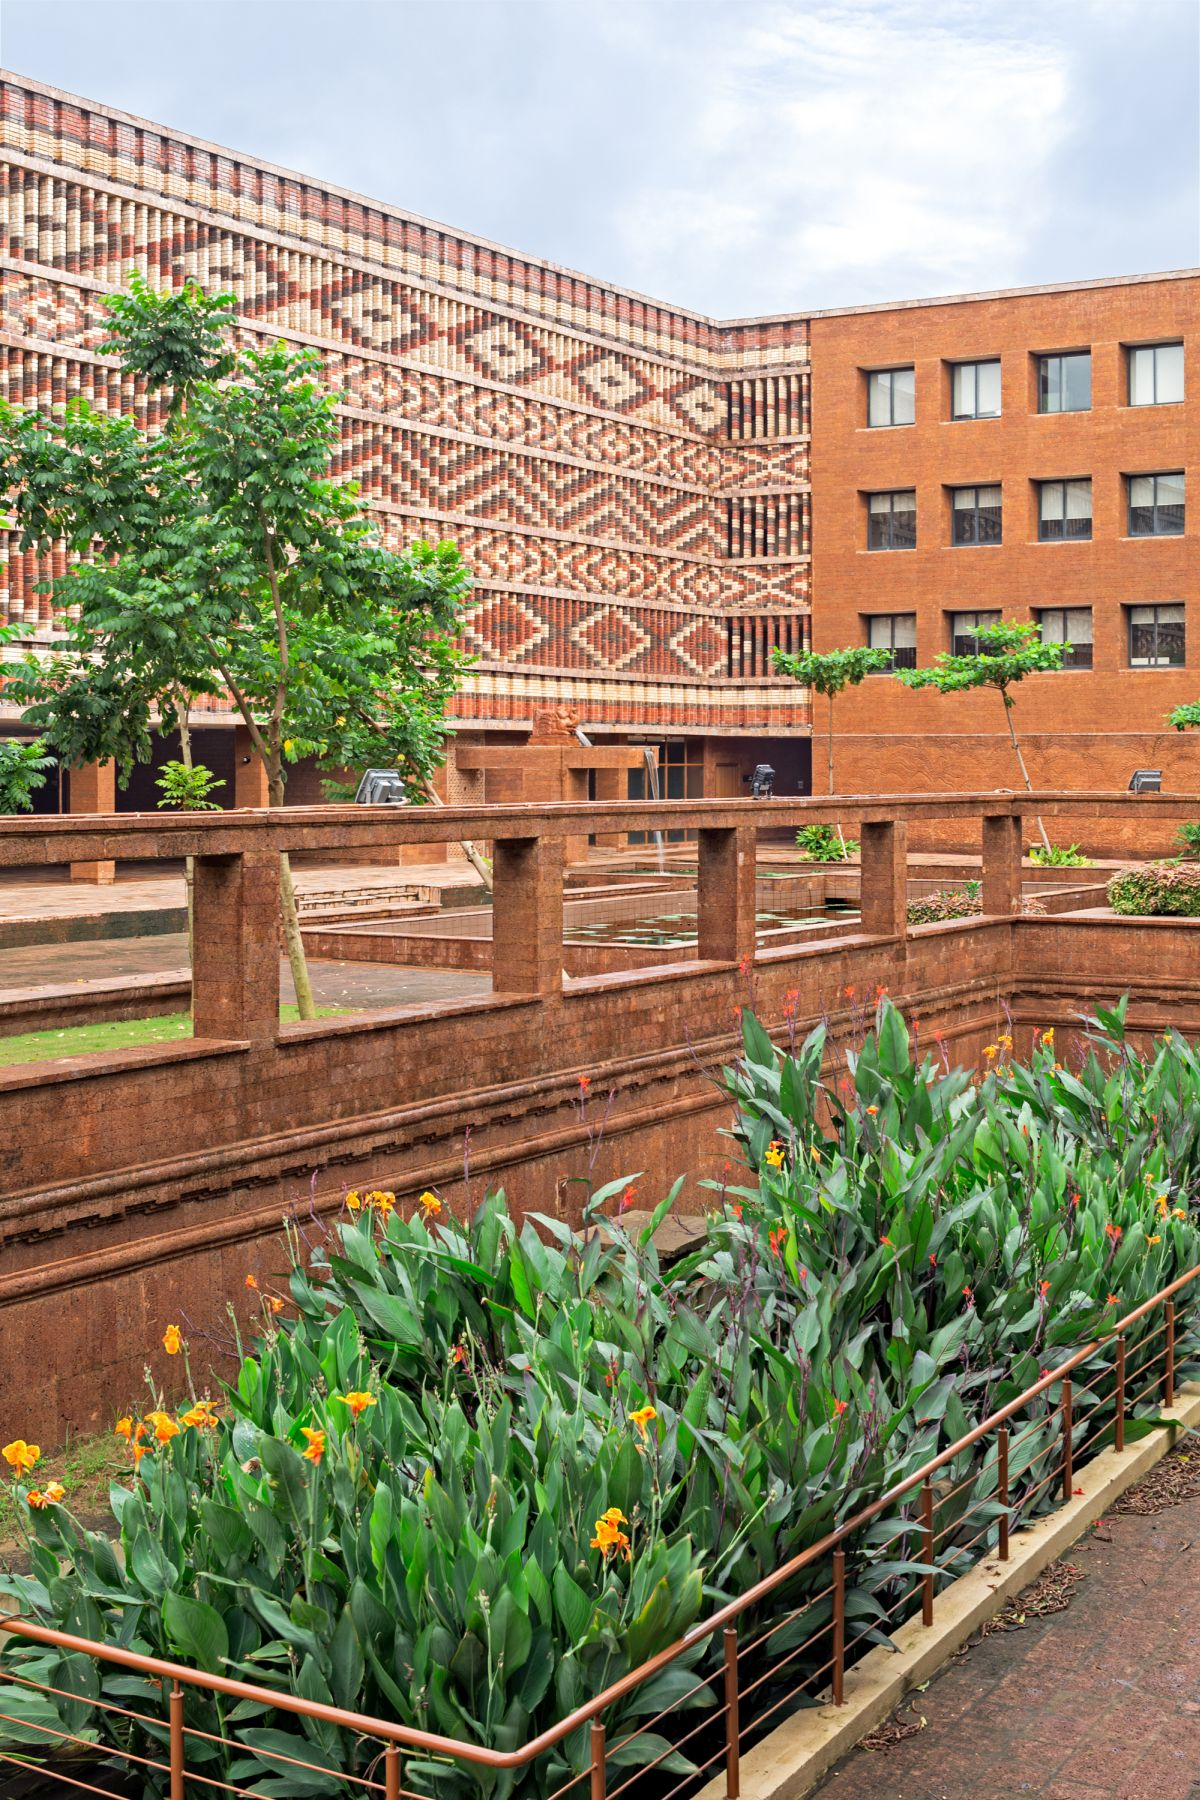 Krushi Bhawan   150 Local Artisans Come Together to Craft a Civic Building in India, by Studio Lotus 32